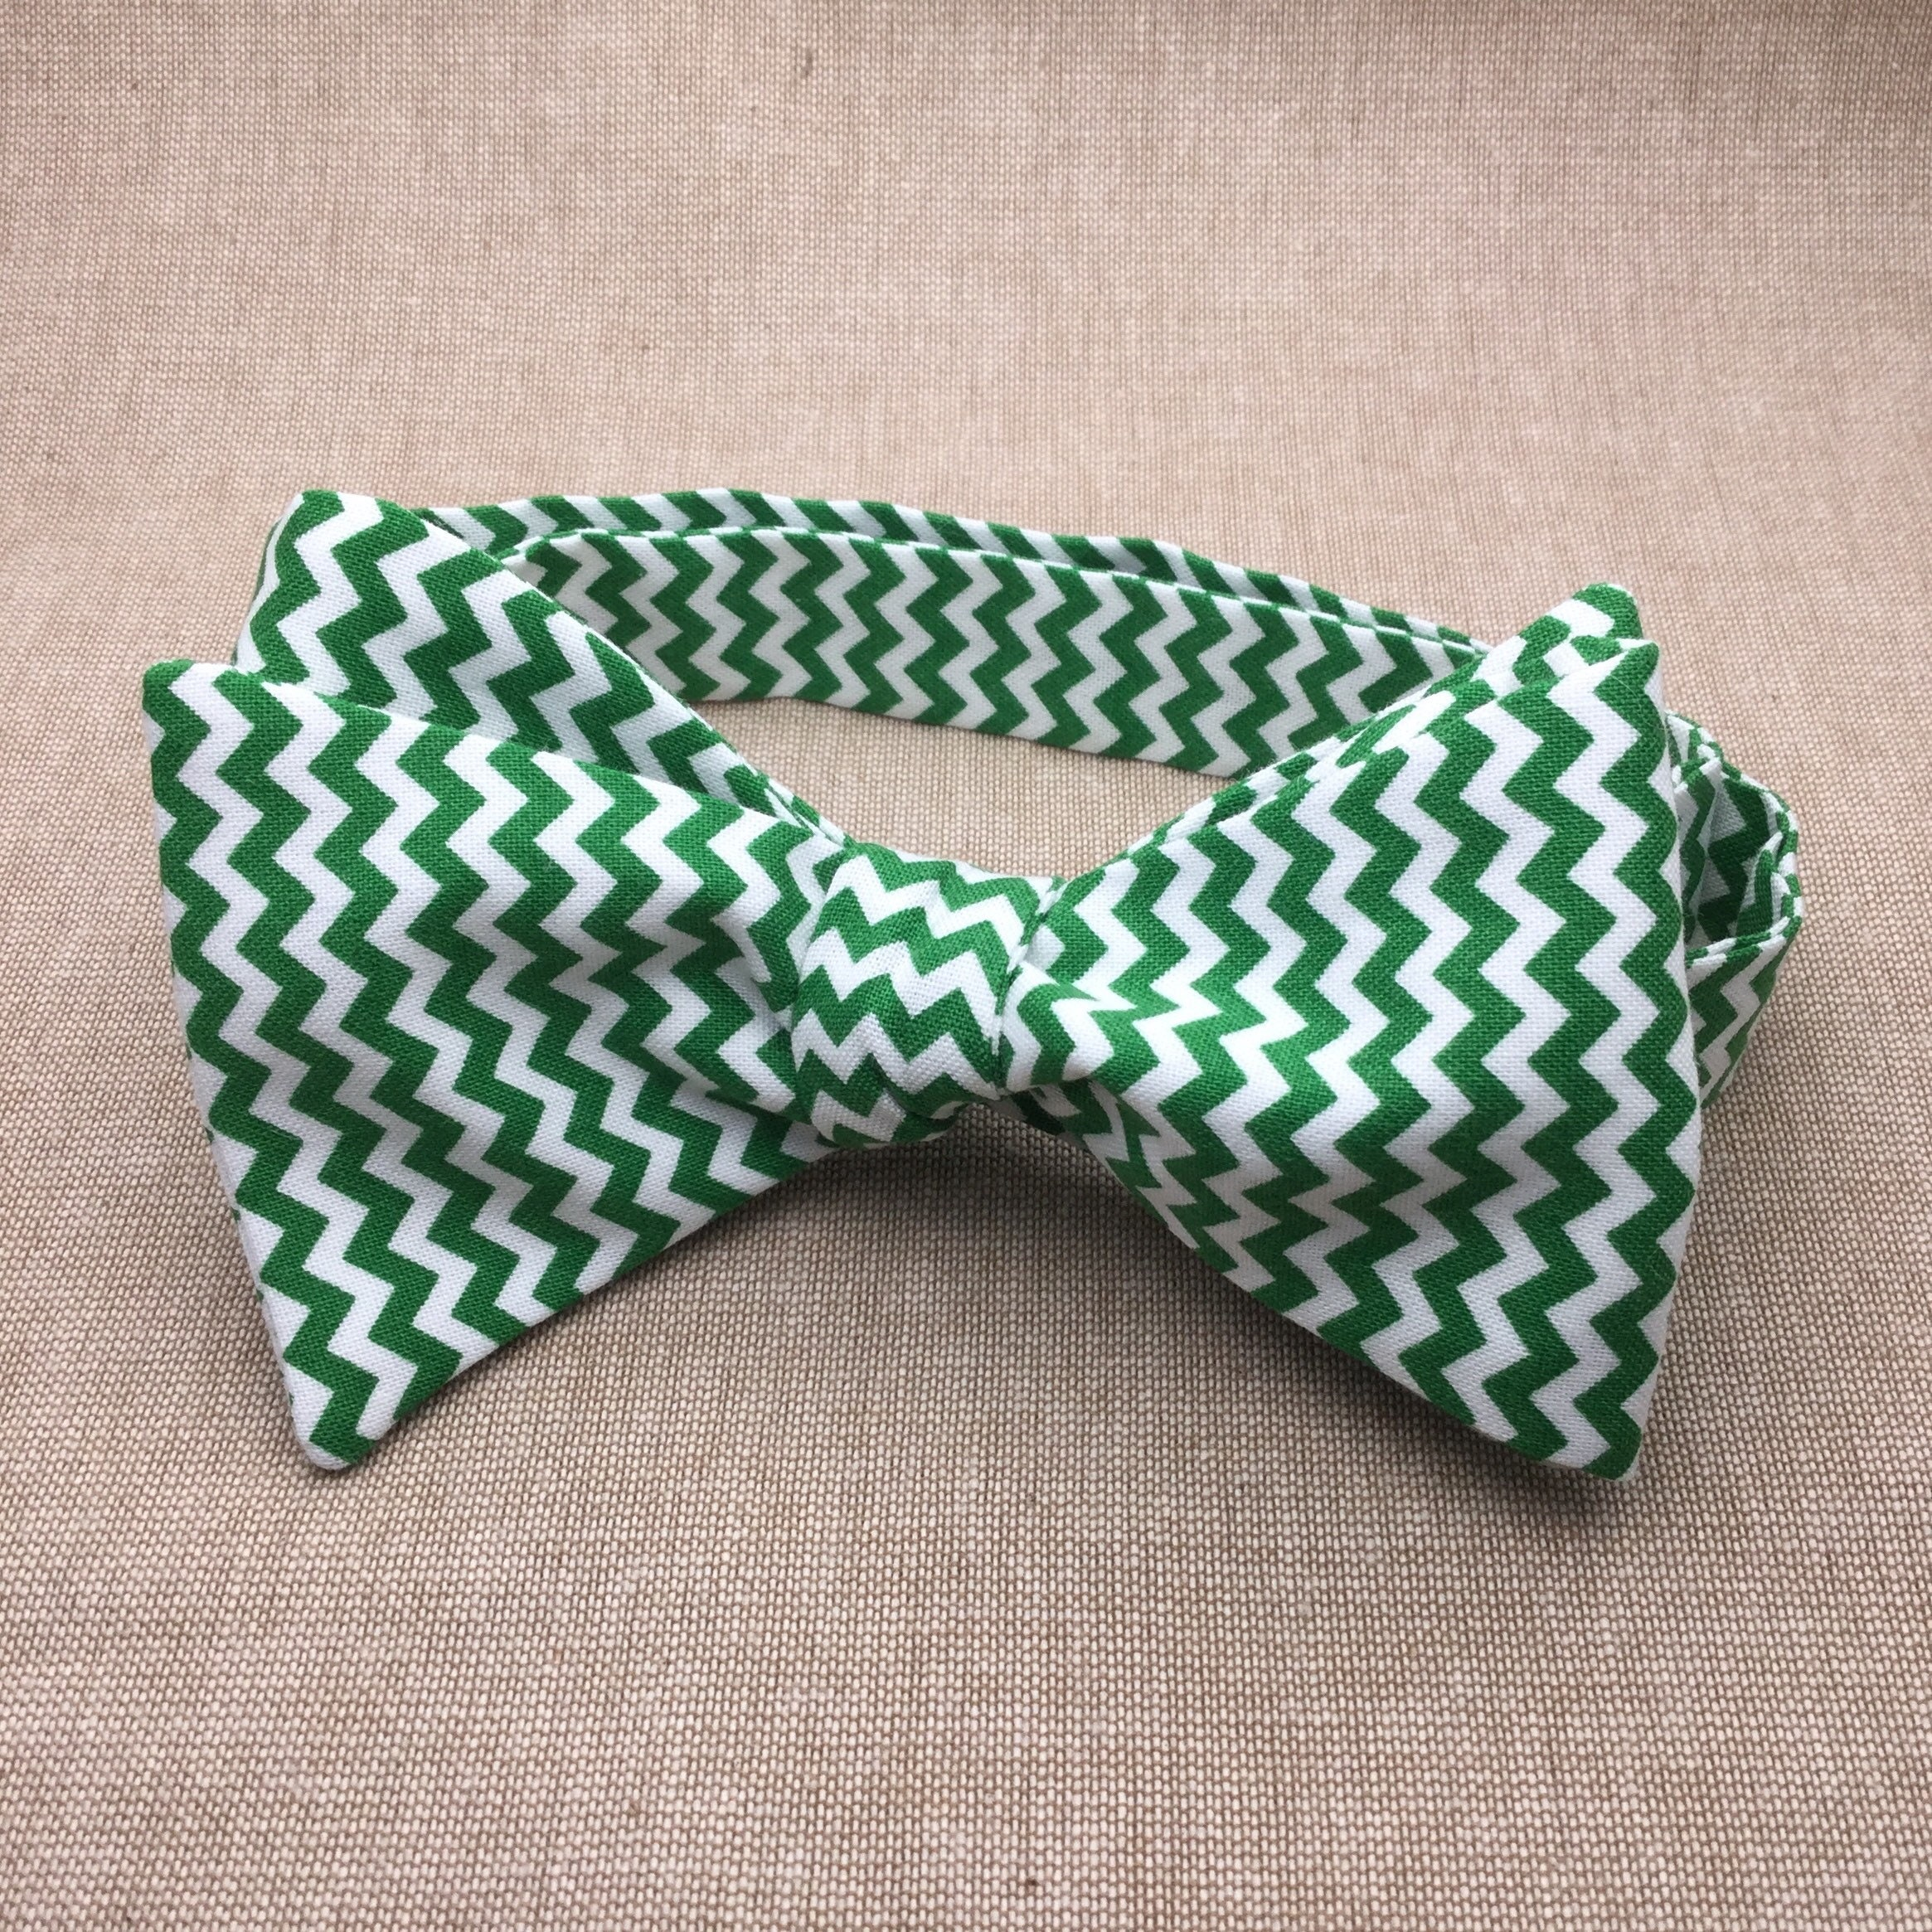 6601e4635fac Green Chevron Bow tie Self tie Bow tie Matching Pocket | Etsy